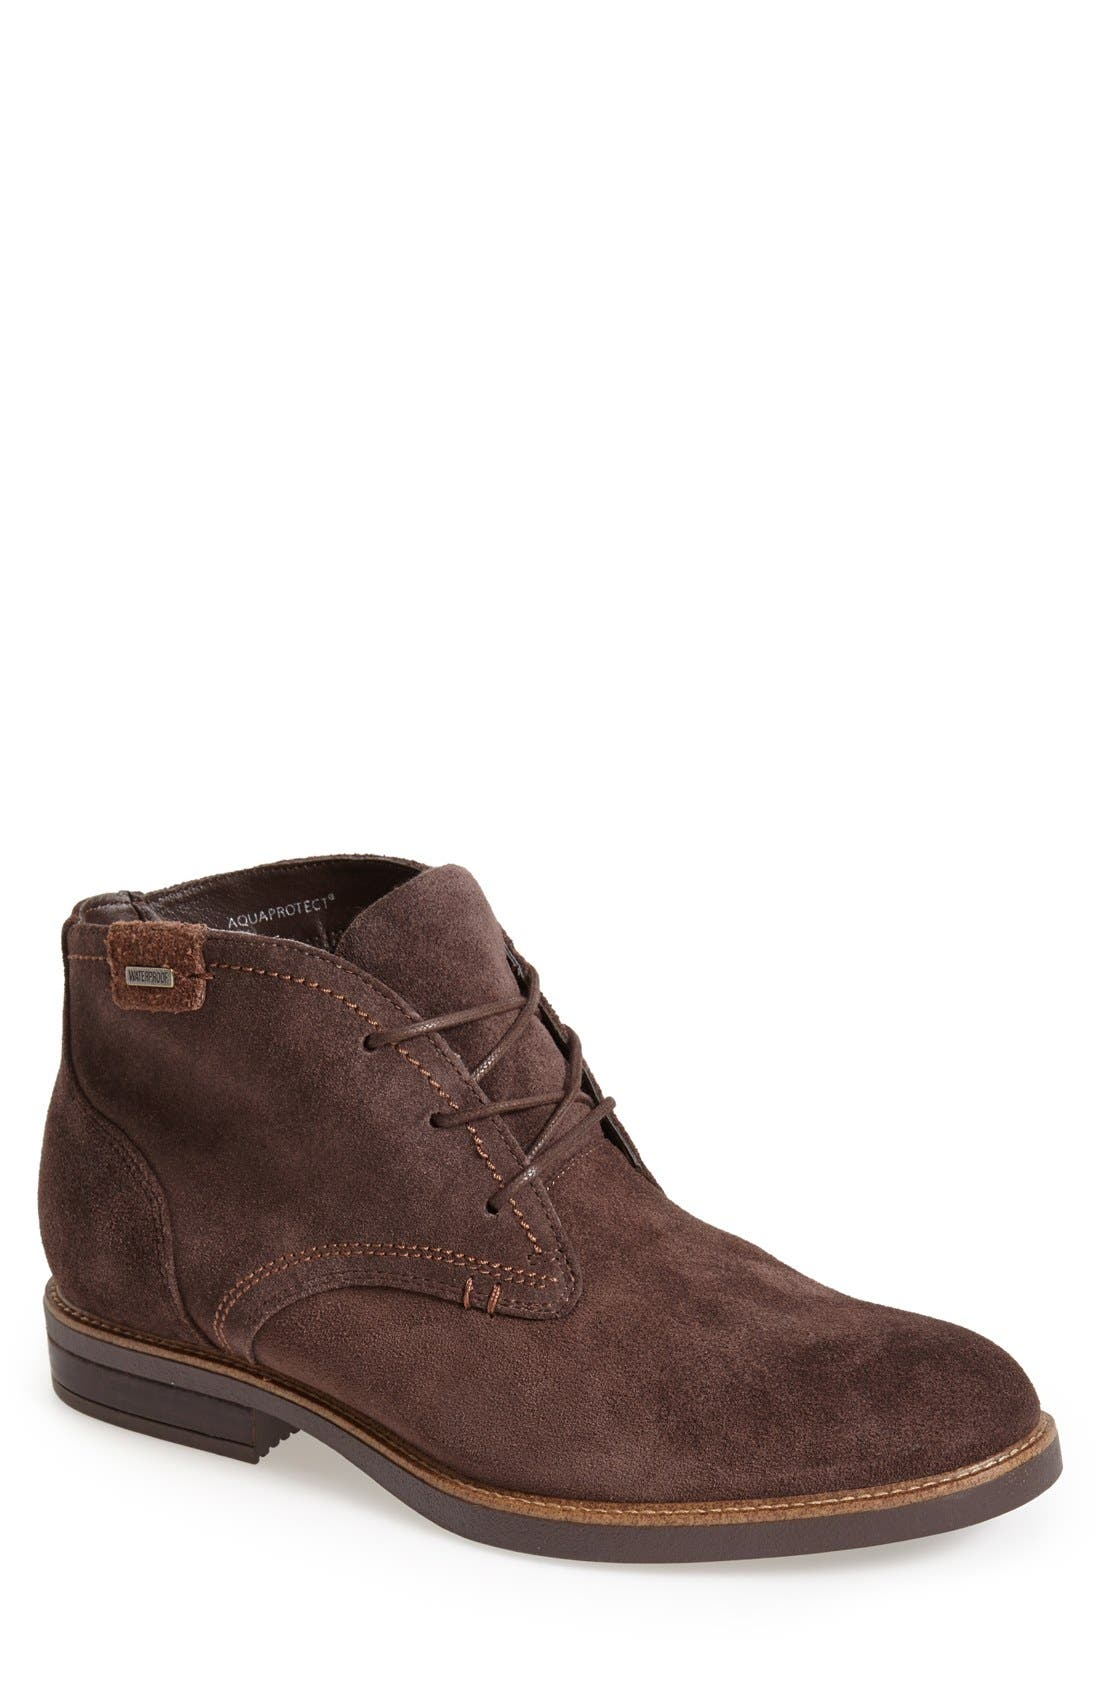 Gustave Waterproof Chukka Boot,                         Main,                         color, CAFE